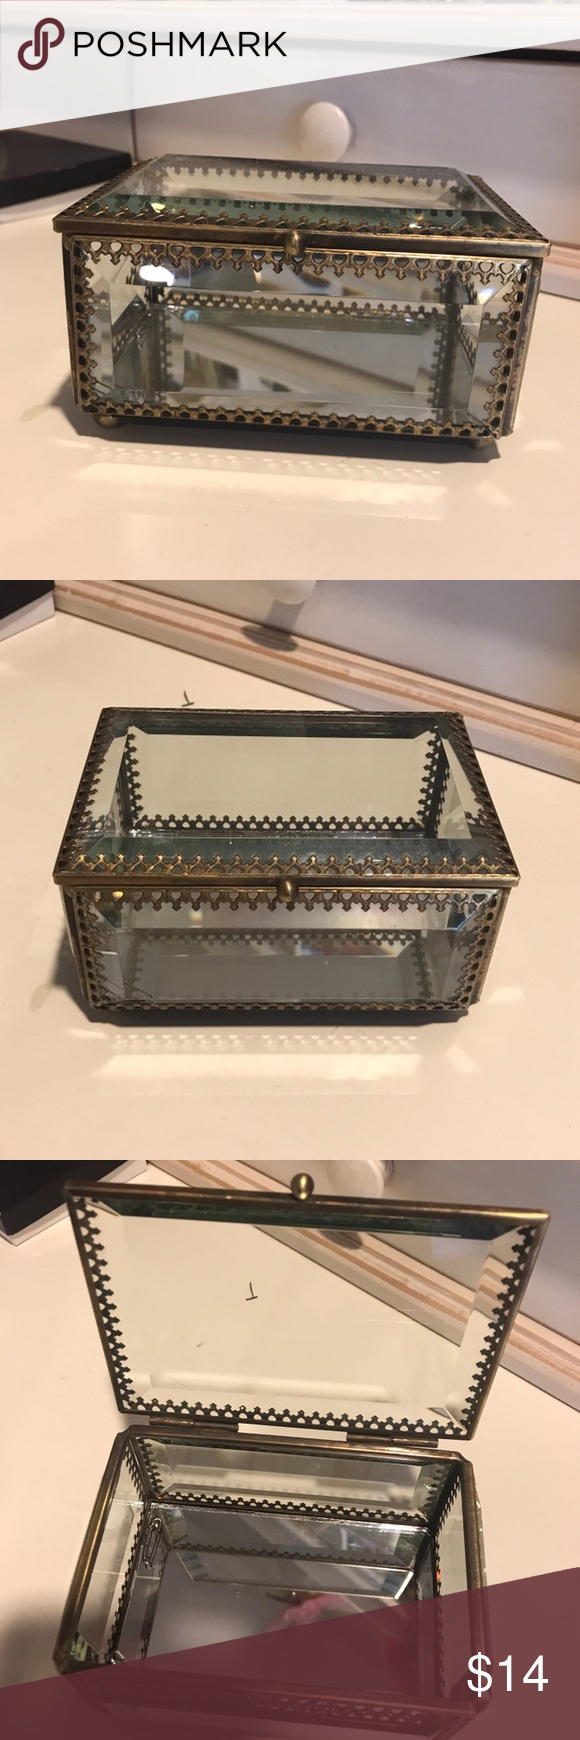 Nicole Miller Jewelry Box Stunning Nicole Miller Jewelry Box Never Used Jewelry Boxbeautifulperfect Design Decoration